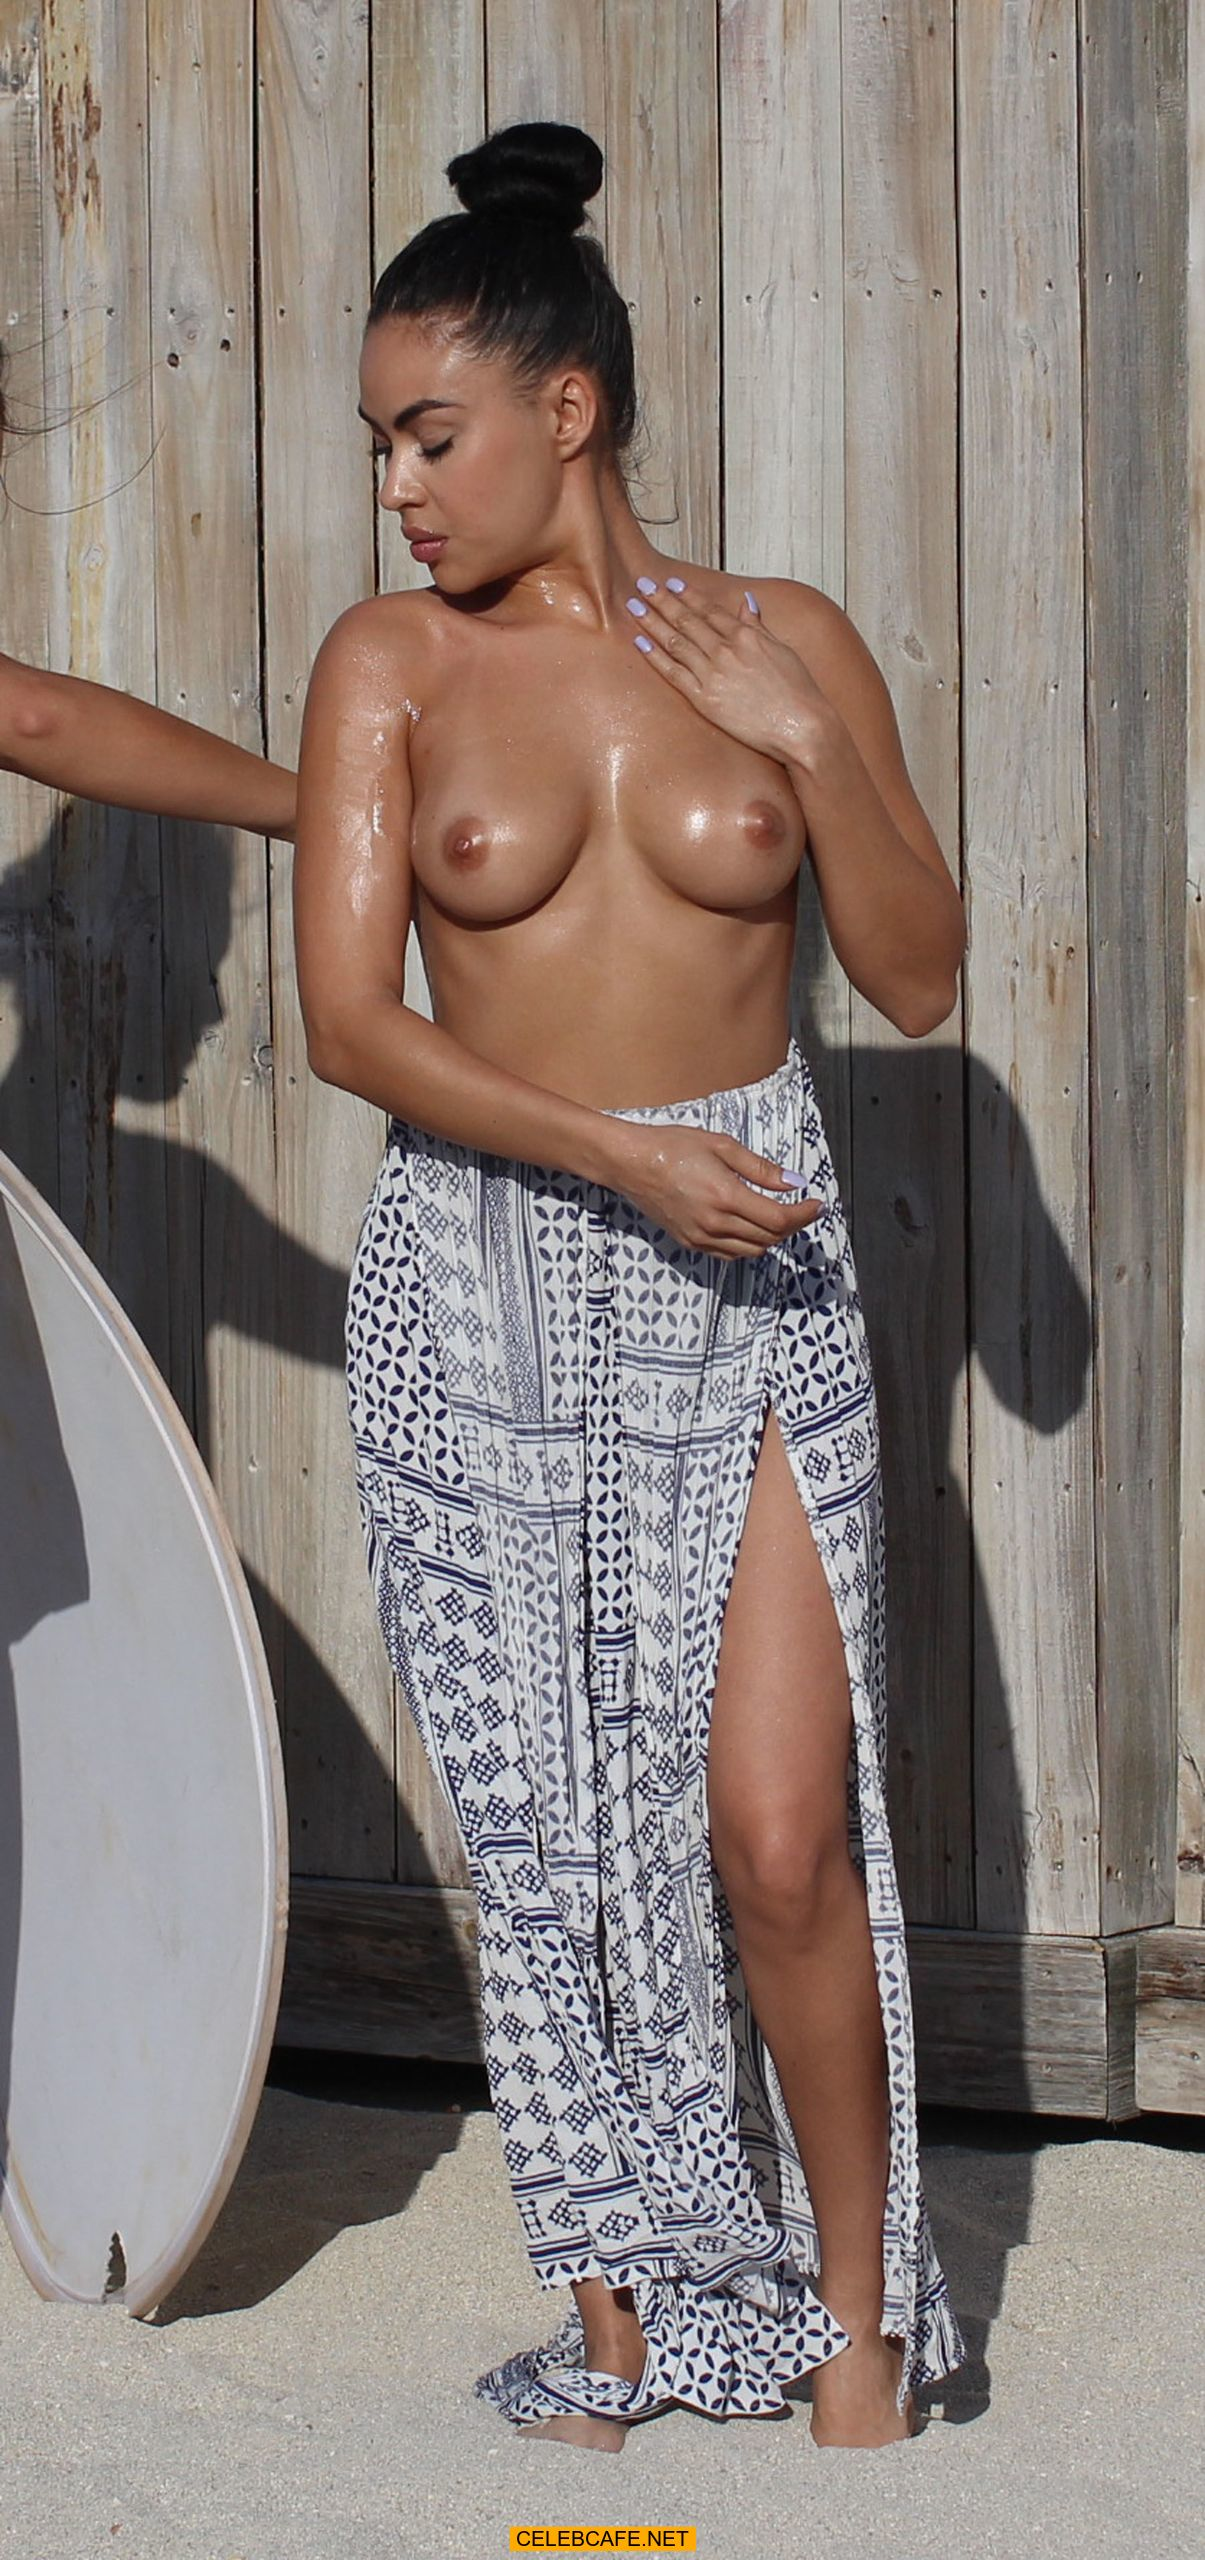 Alicia Bogo Desnuda topless and nude celebrity paparazzi pics. oops, nipslip